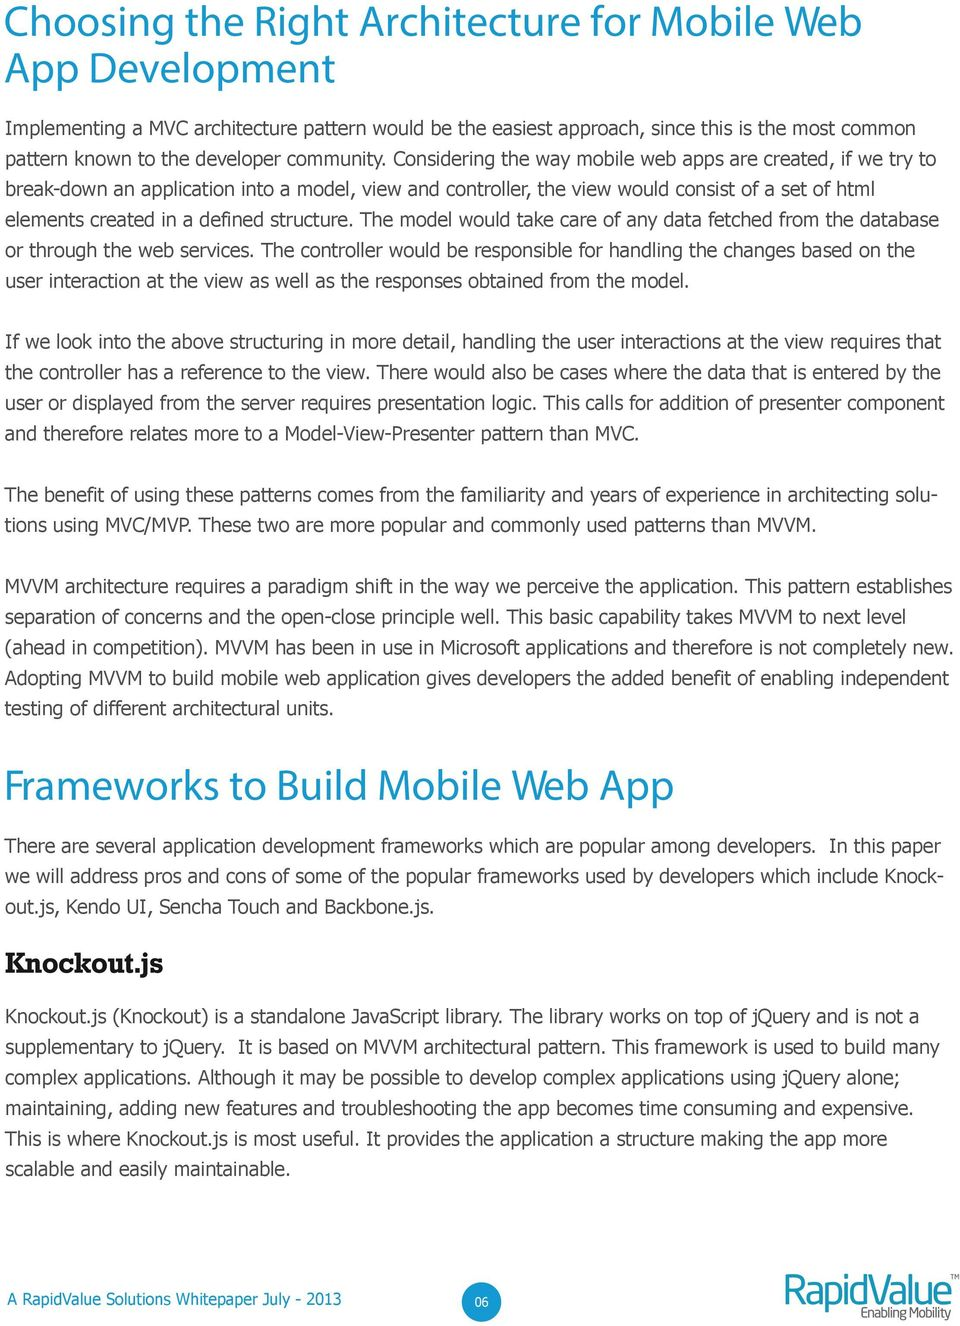 Considering the way mobile web apps are created, if we try to break-down an application into a model, view and controller, the view would consist of a set of html elements created in a defined